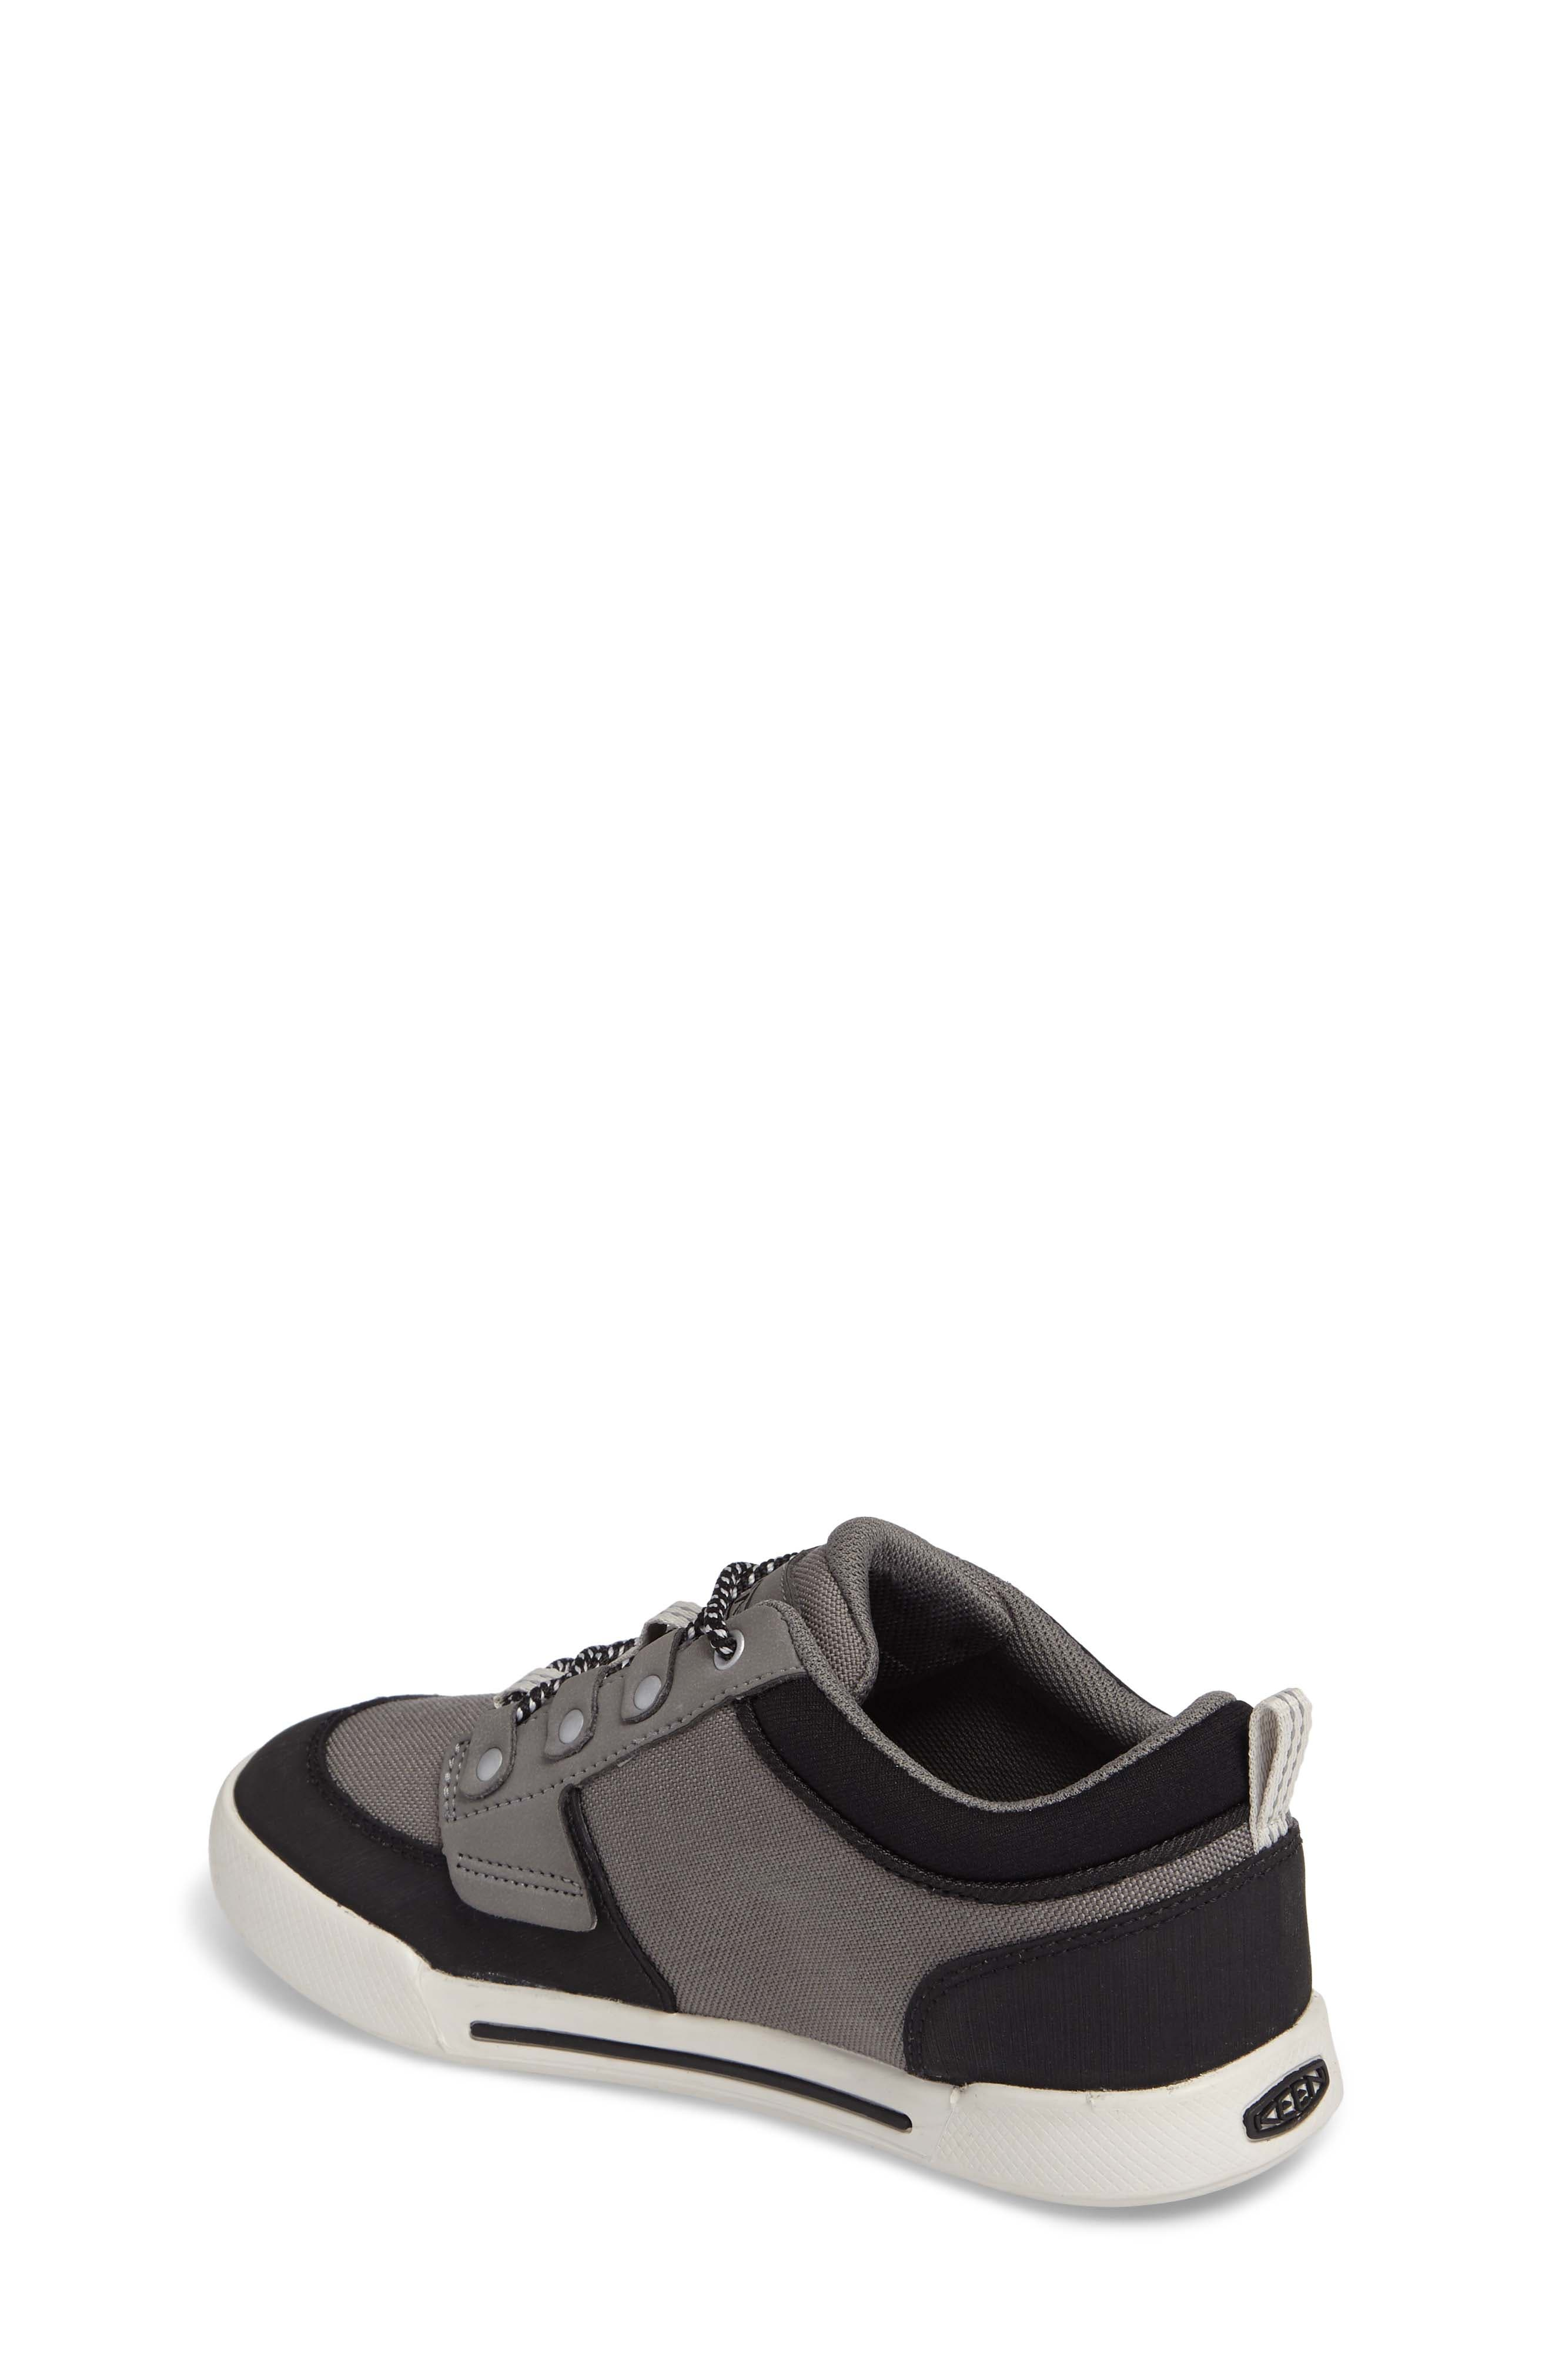 Encanto Wesley Sneaker,                             Alternate thumbnail 2, color,                             Gargoyle/ Black